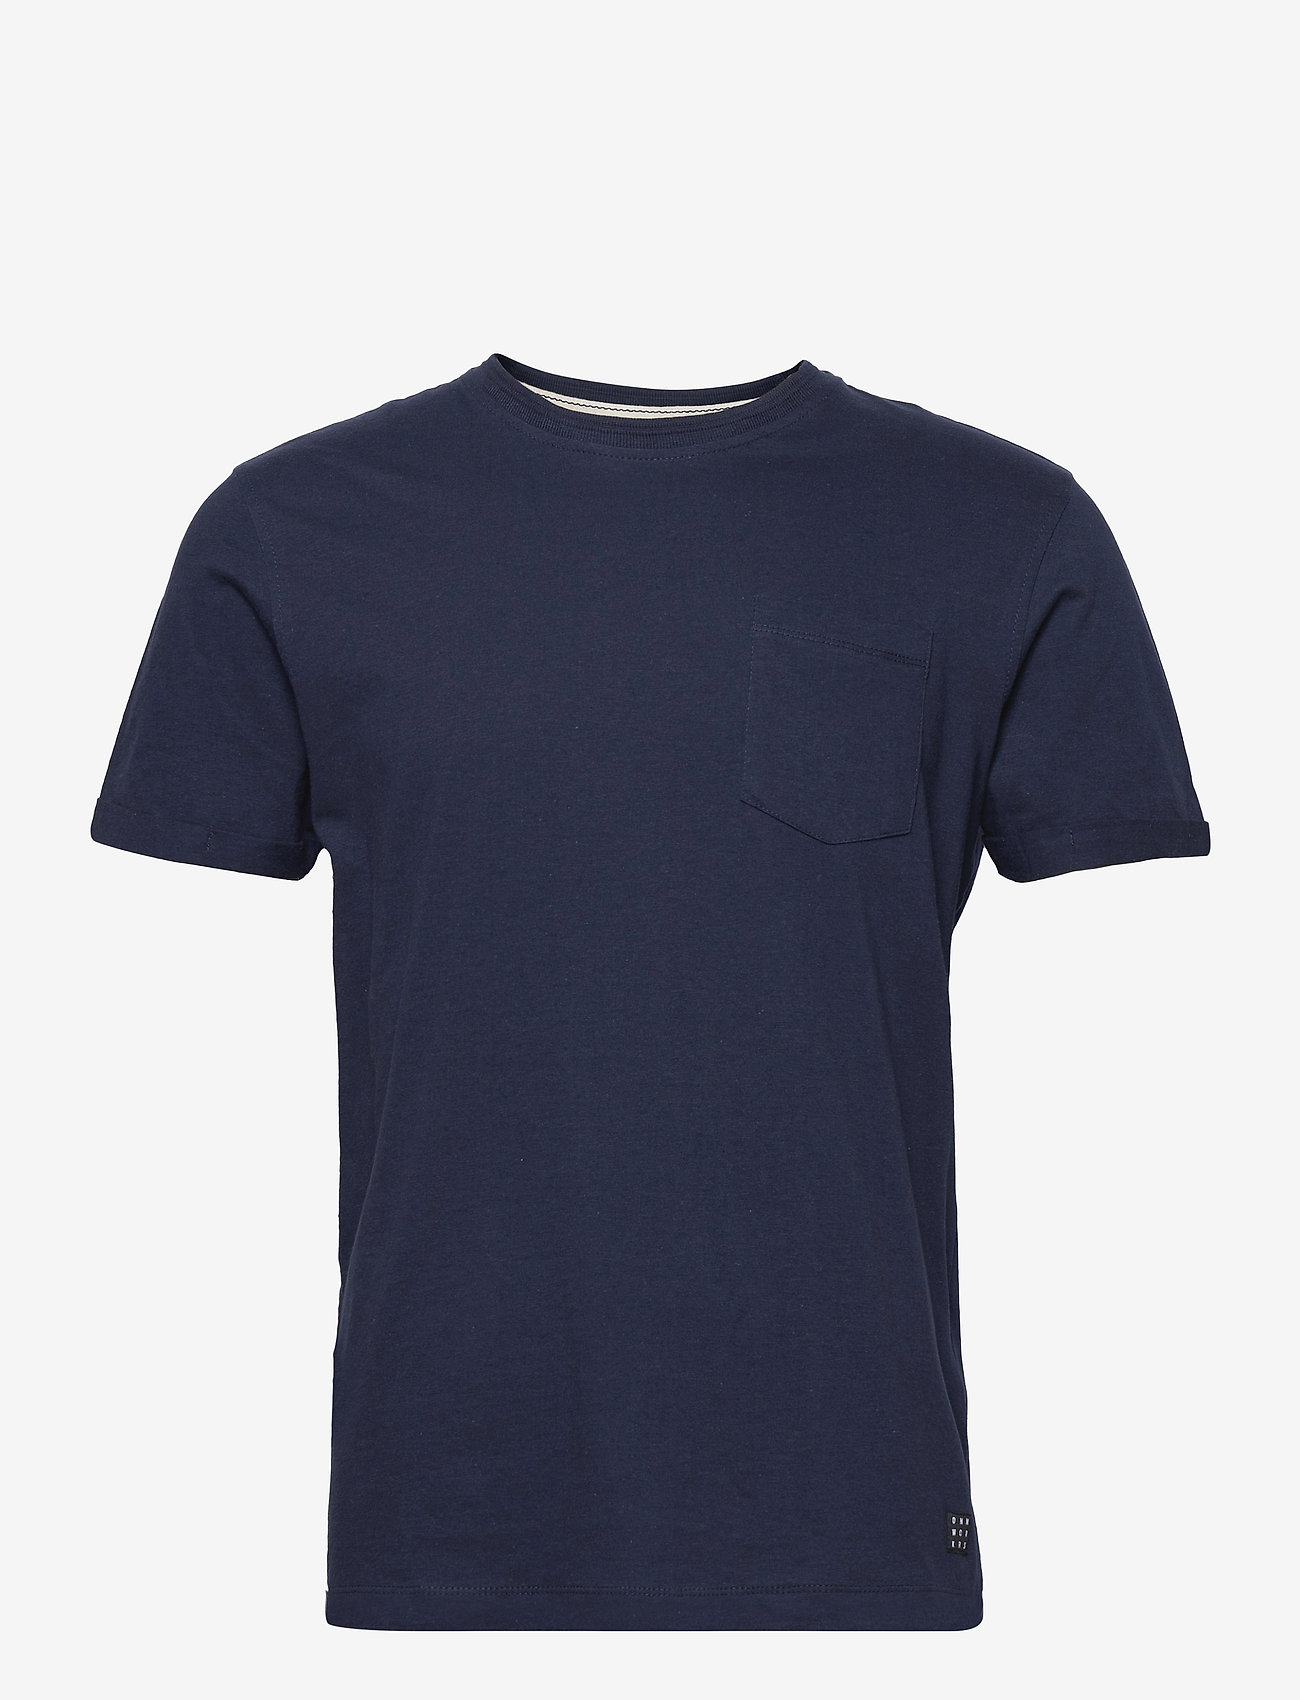 Blend - Tee - Organic - basic t-shirts - dress blues - 0